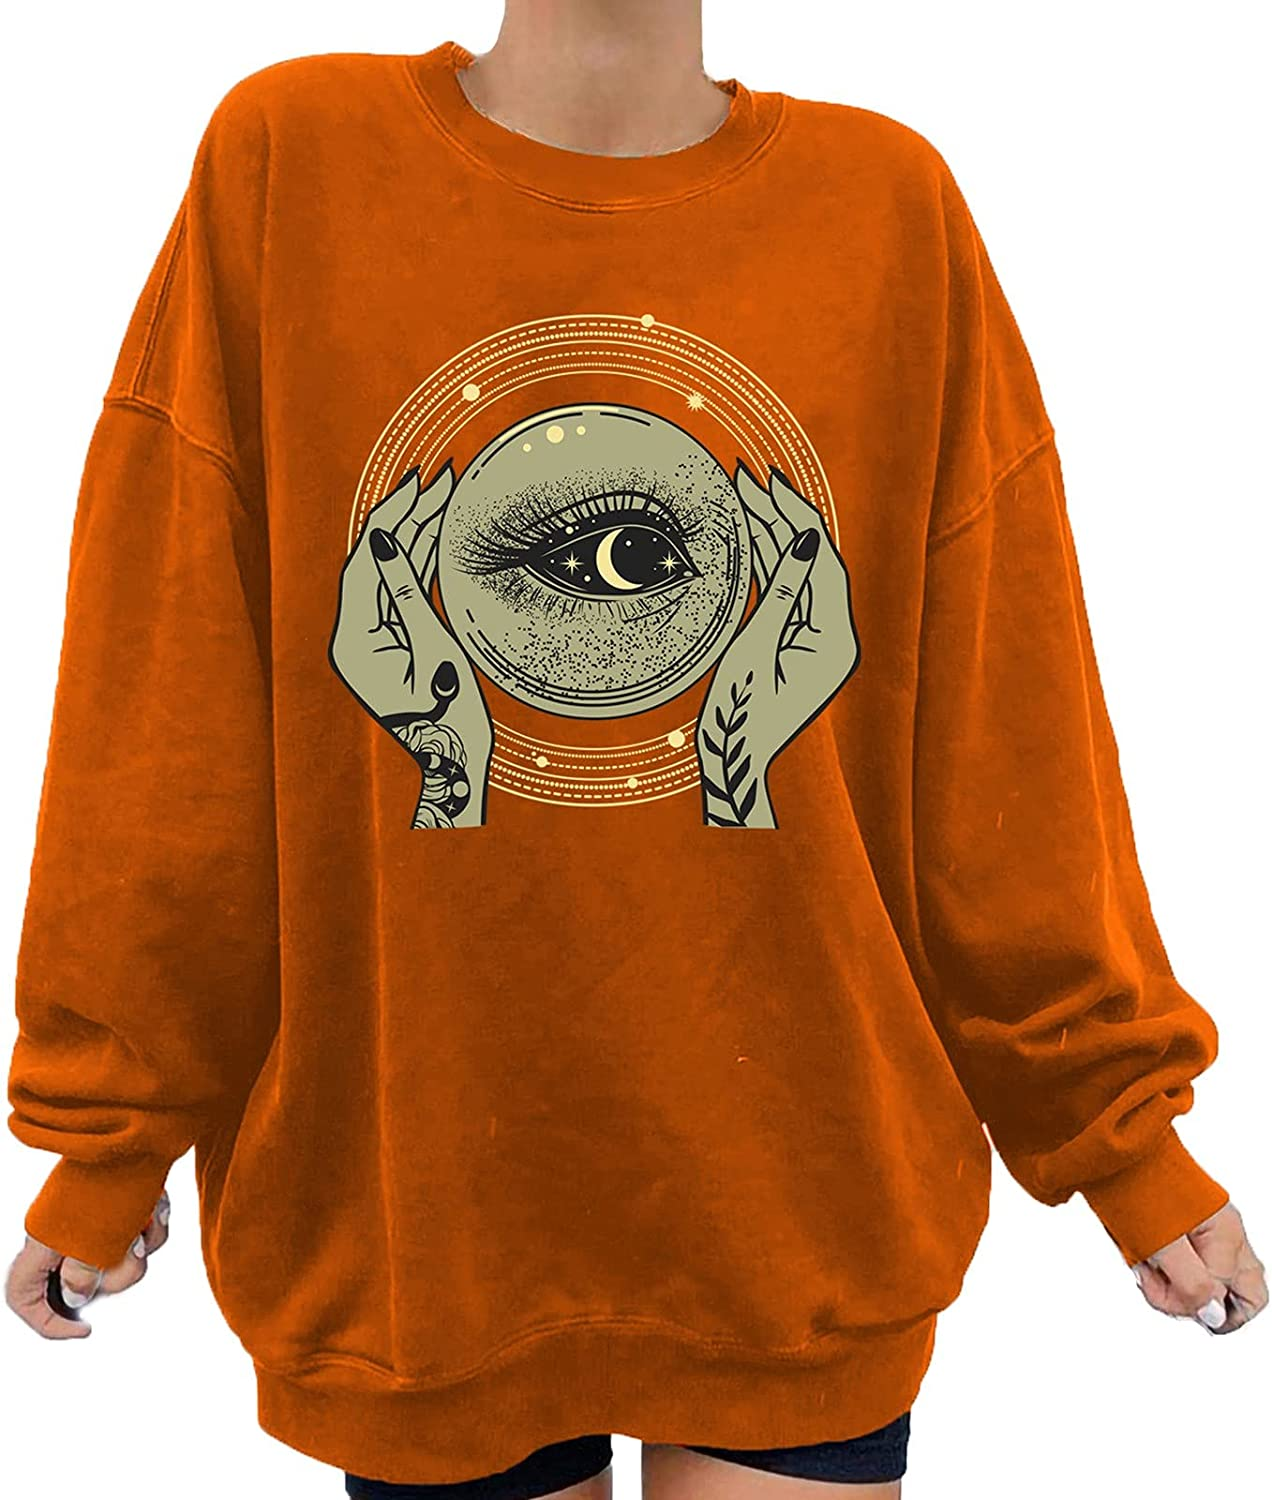 Fall Clothes for Women Graphic Lon Size Printed 5 popular Plus Sweatshirts New product